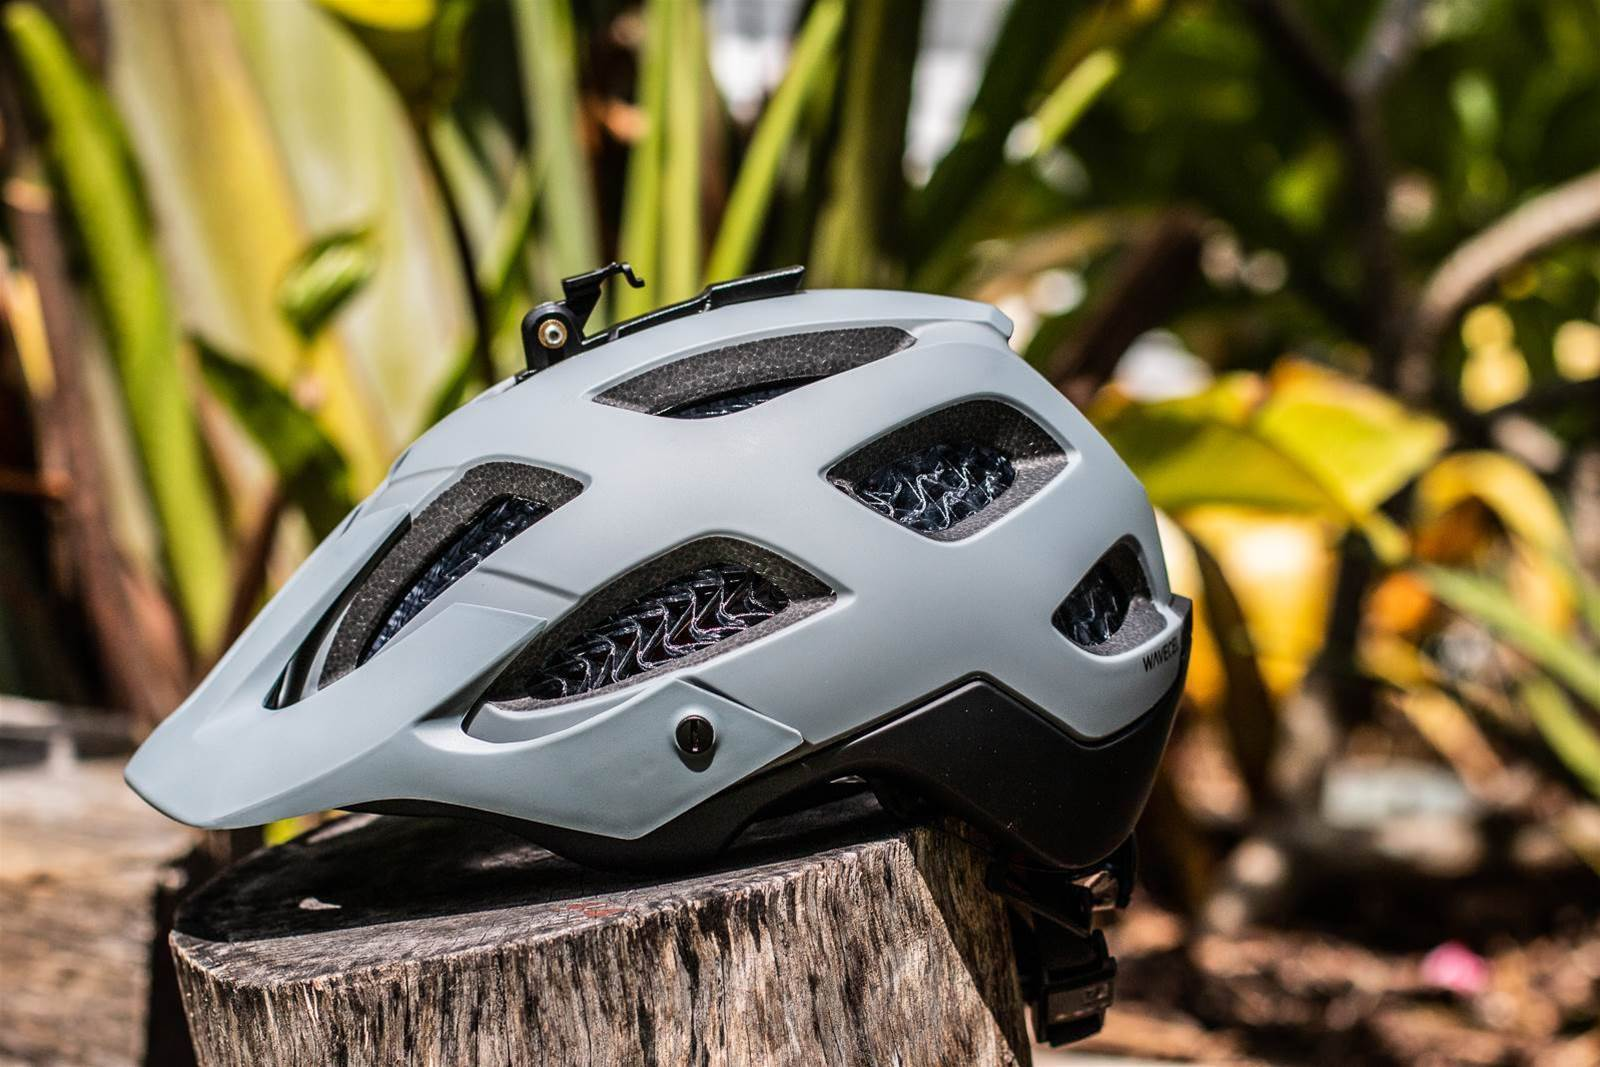 Bontrager WaveCel helmets claim to boost safety